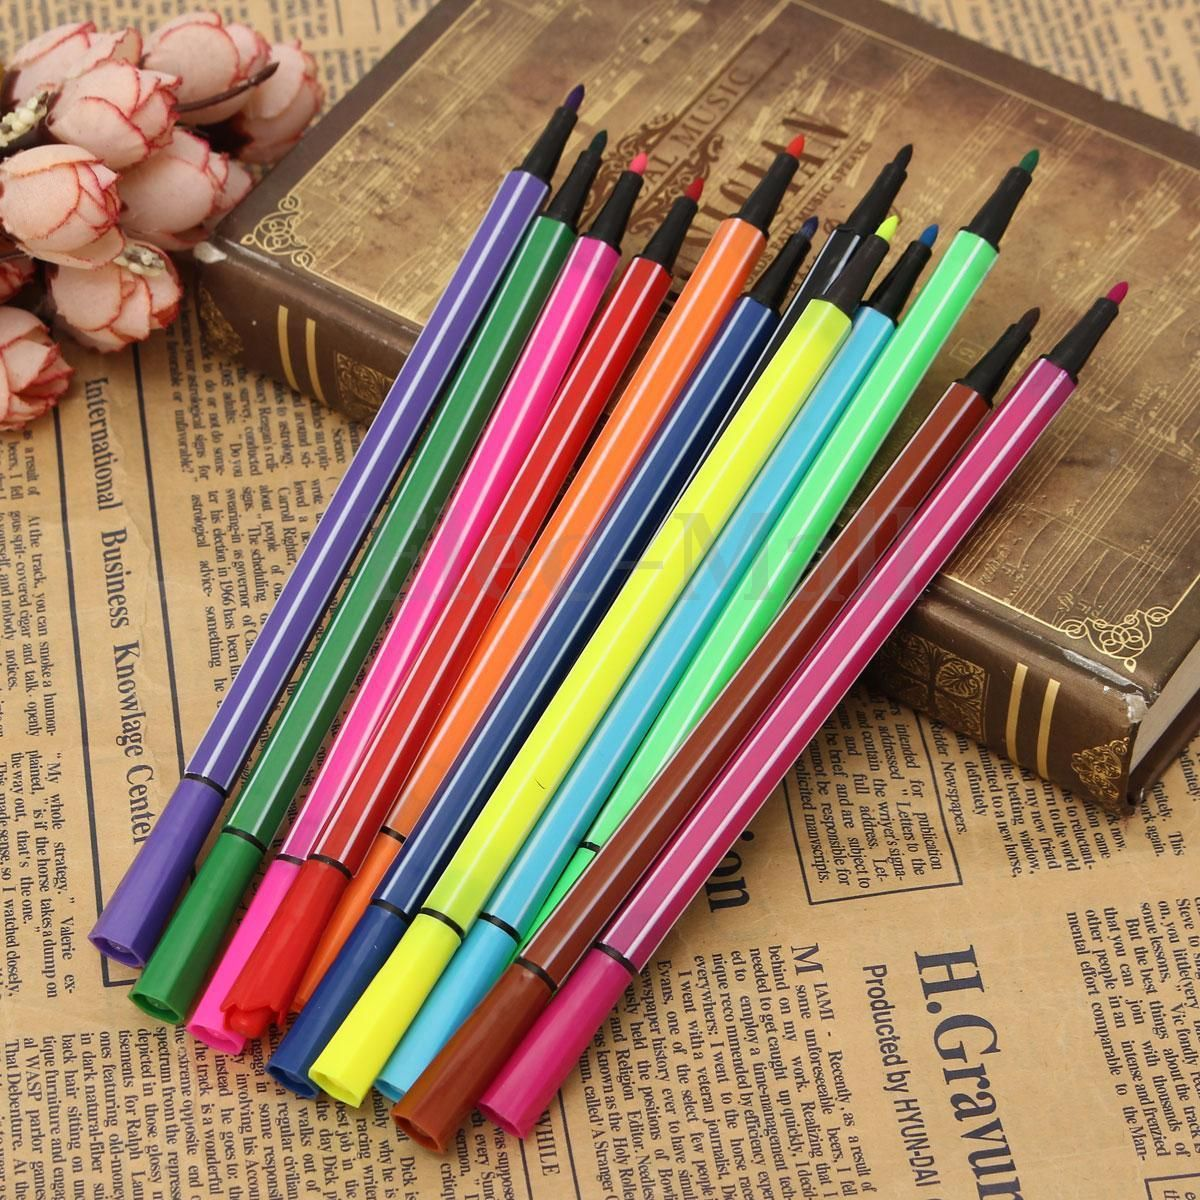 Color drawing pens for artists - 12 Colors Washable Water Color Drawing Pens Artists Paint Marker Student Child